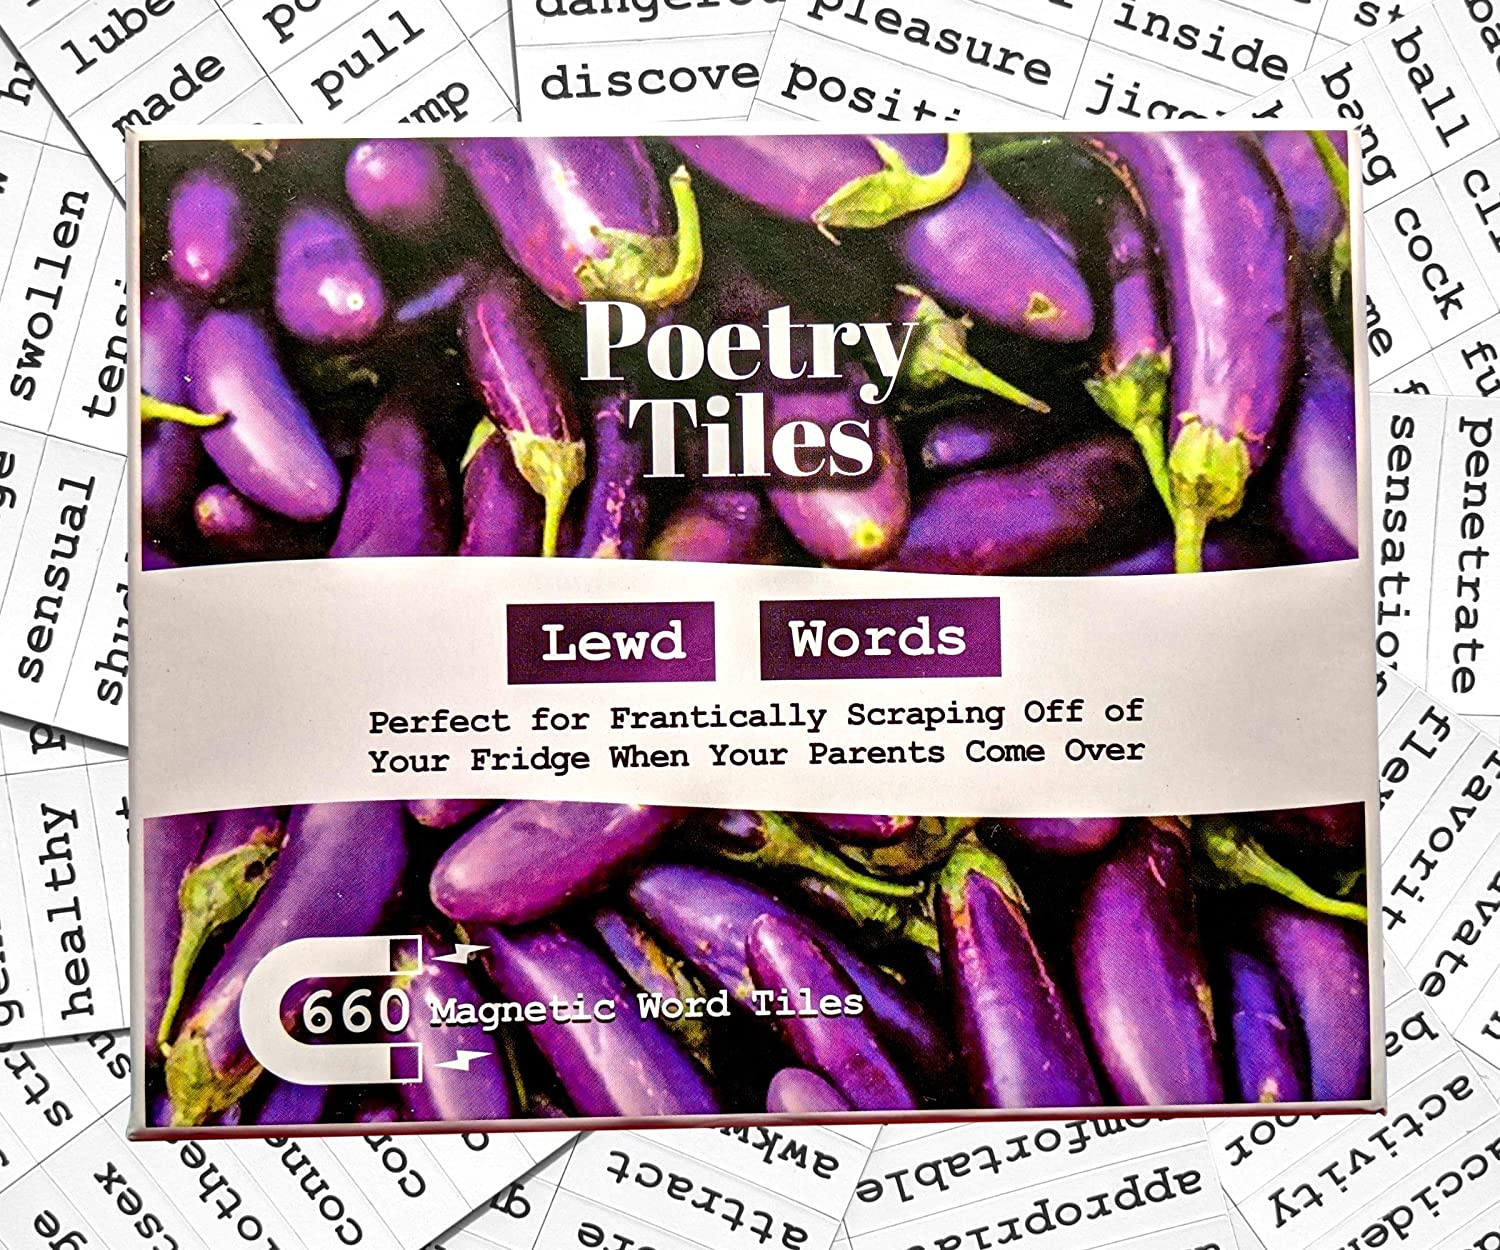 Poetry Tiles - 536 Dirty Words Word Magnets - Smut Adult Themed Kit for Refrigerator Poems and Stories